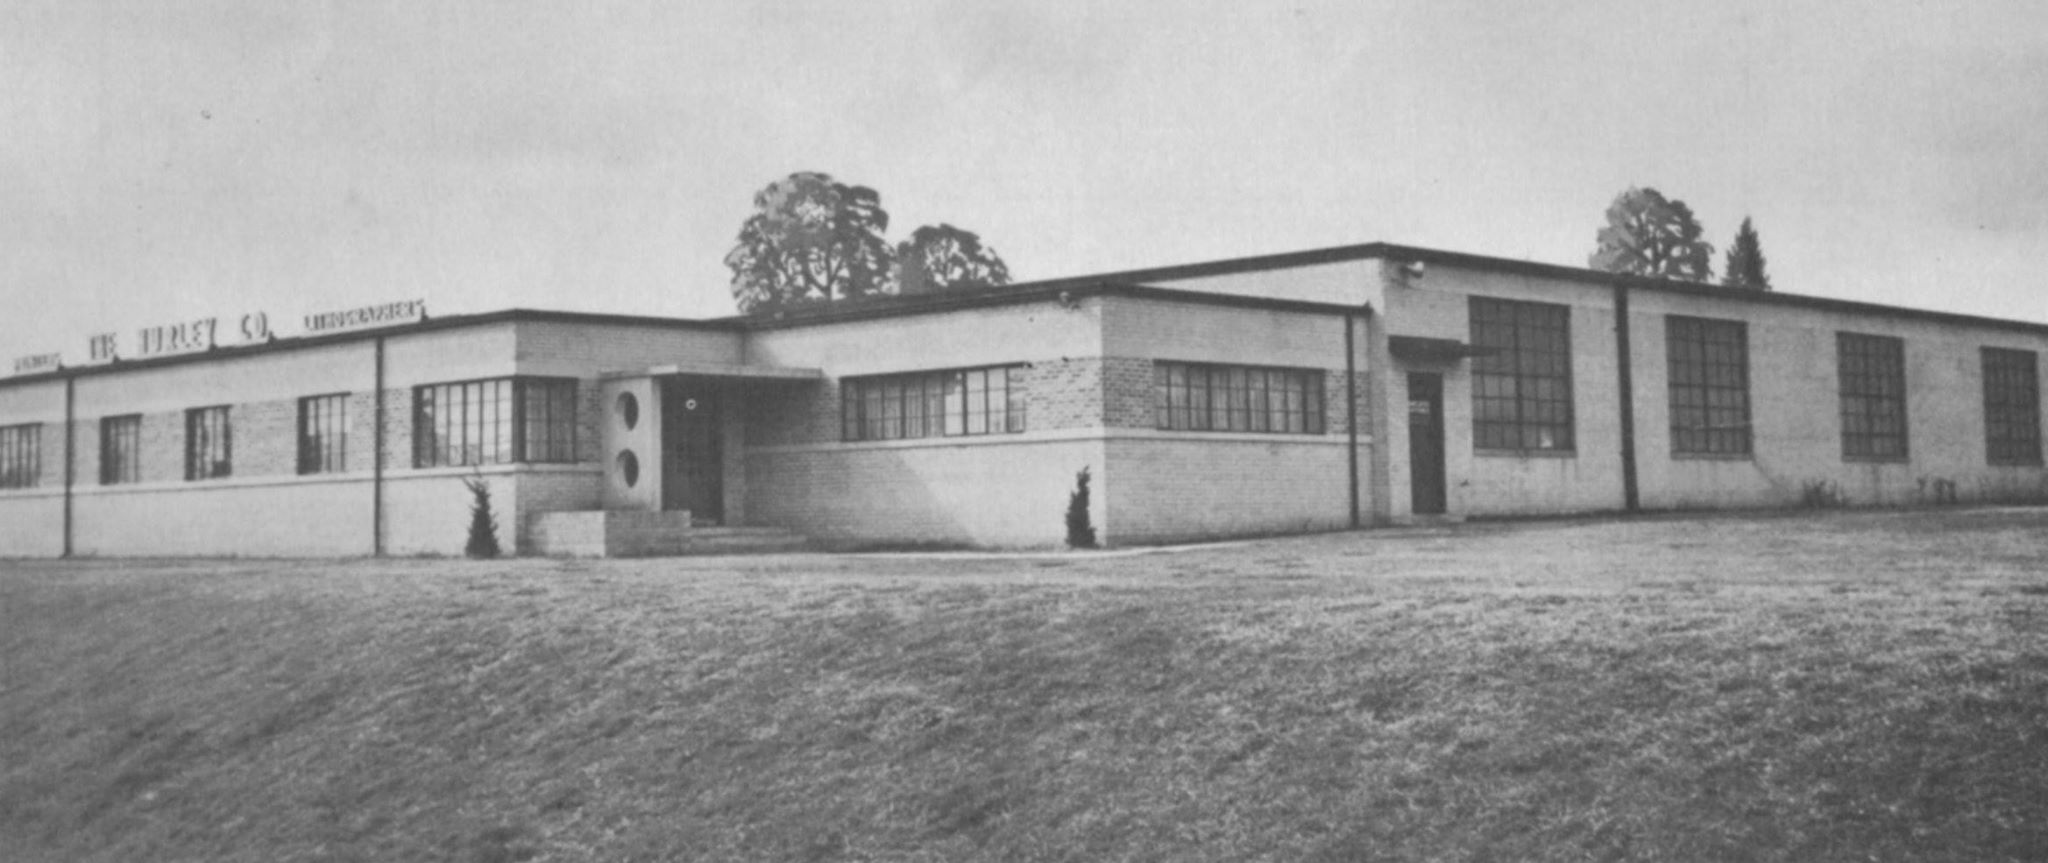 Hurley Company in 1955, now the Camden Police Department